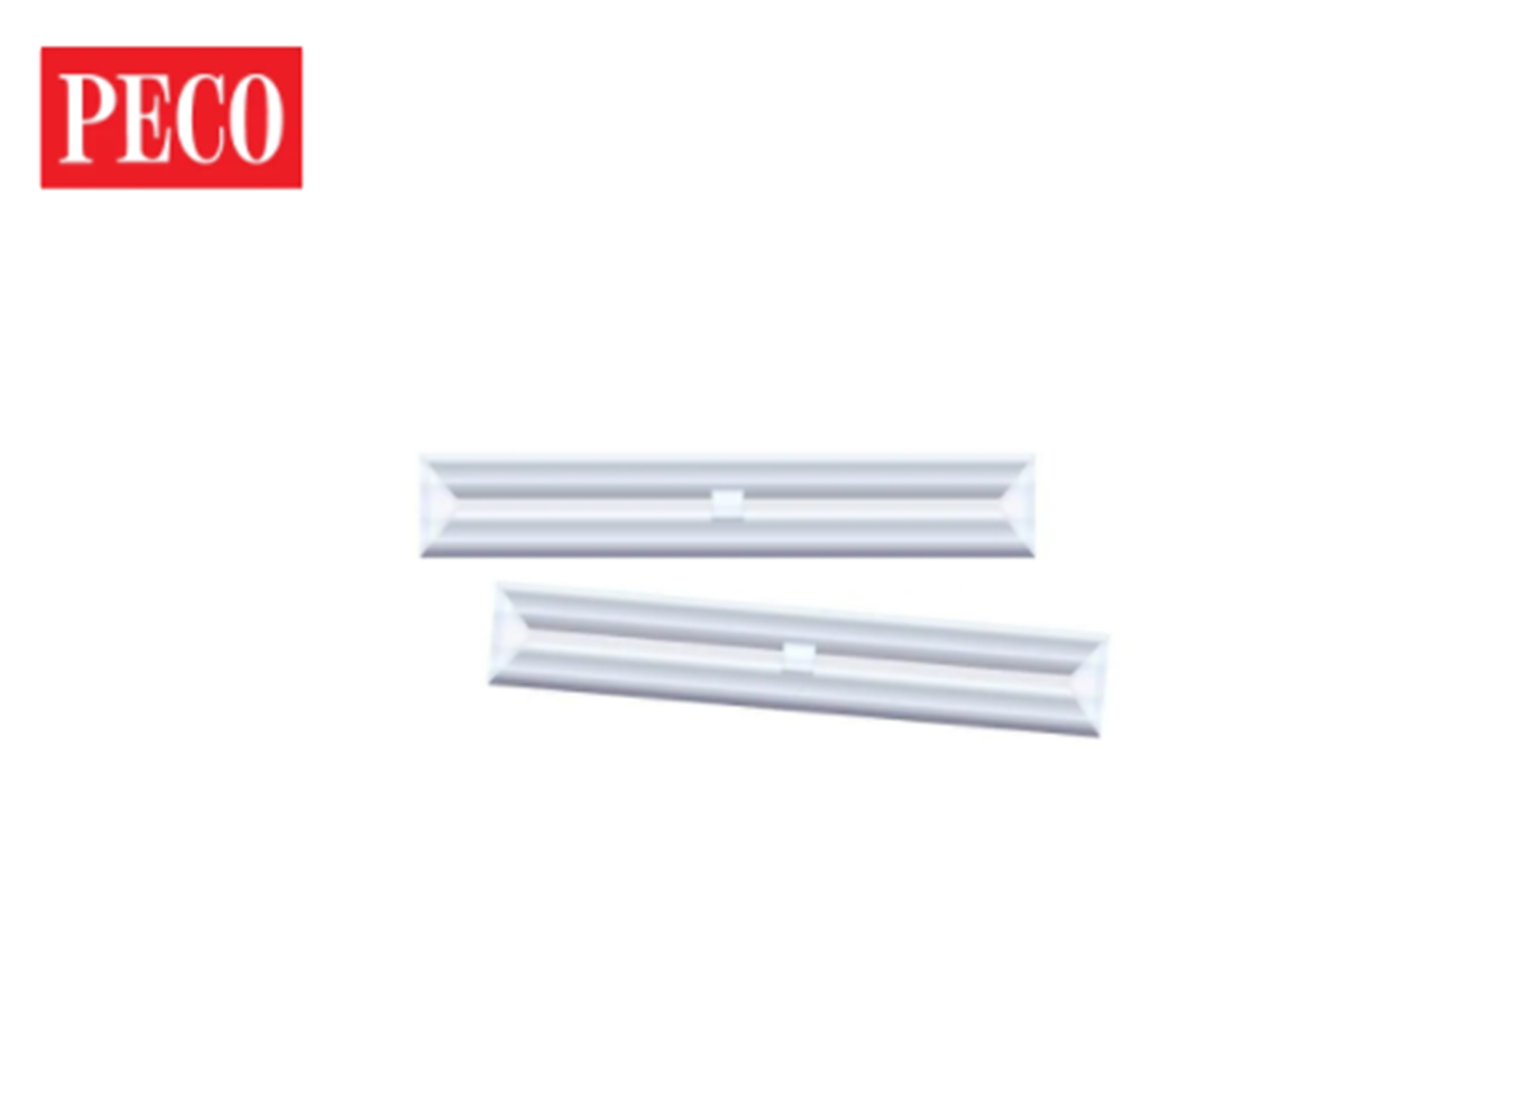 SL111 Pack of 12 finescale insulated rail joiners (for Code 75)